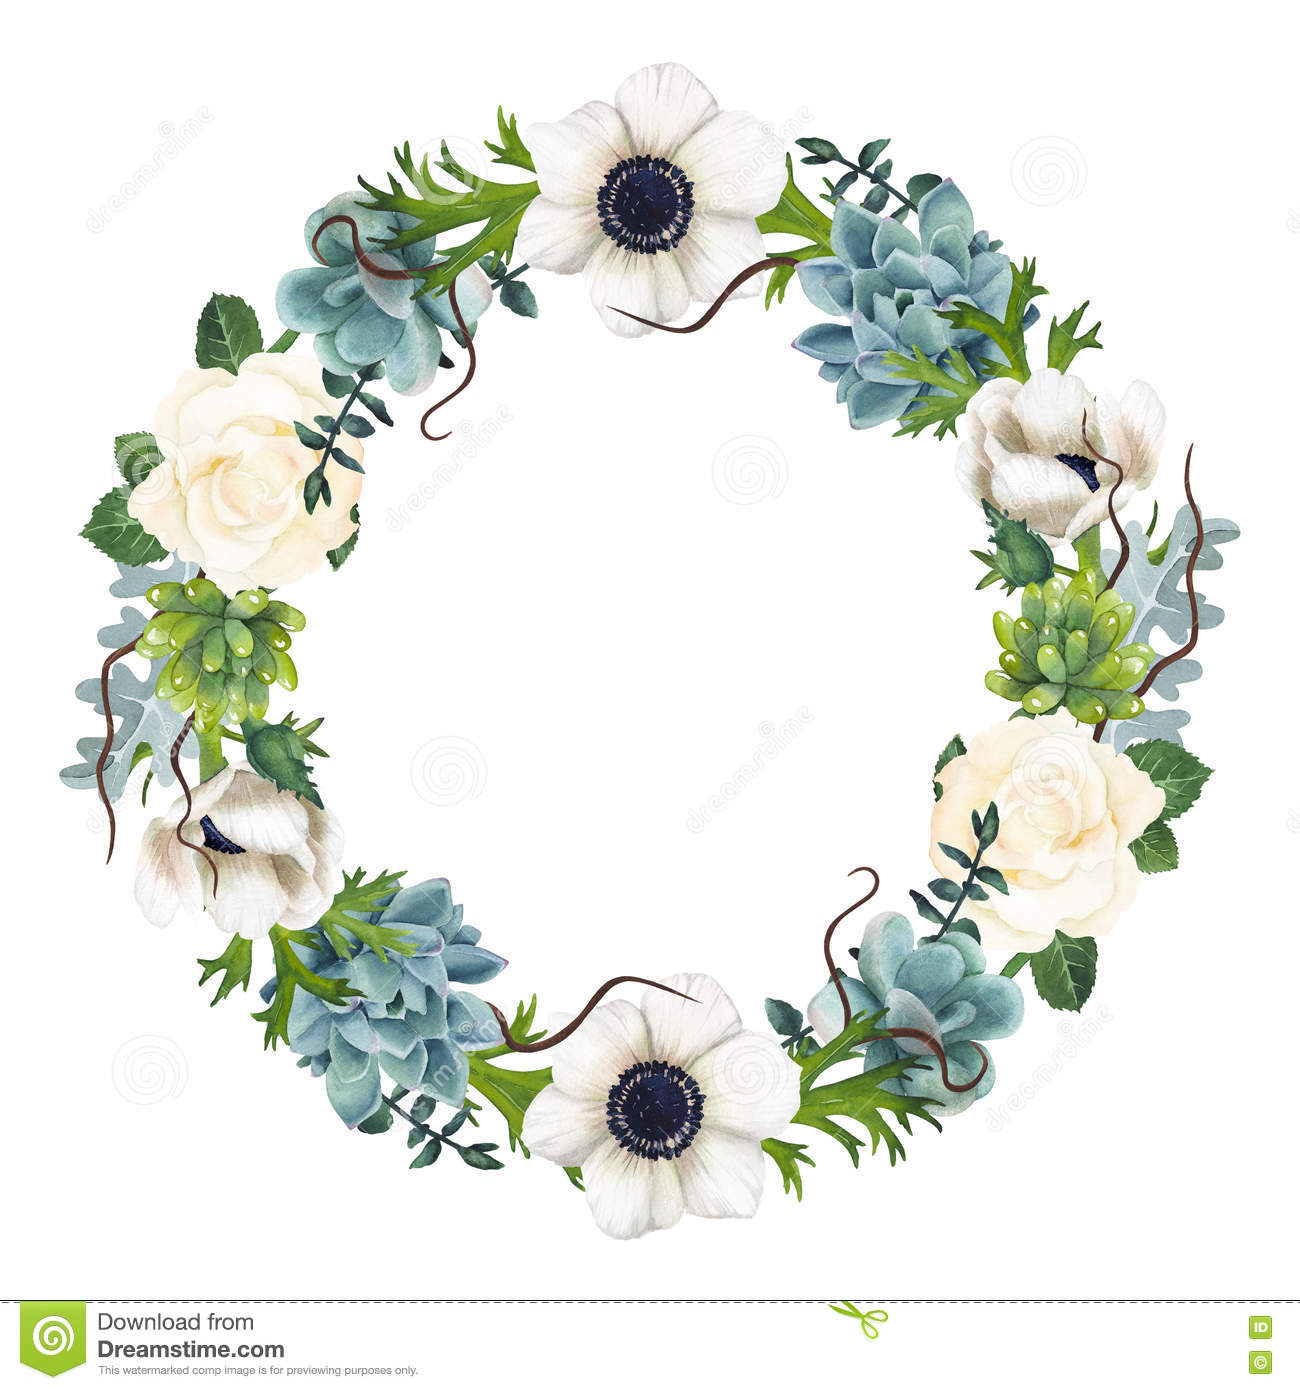 Hand Painted Watercolor Anemones And Succulents Wreath Stock Illustration Illustration Of Dark Posters 81491604